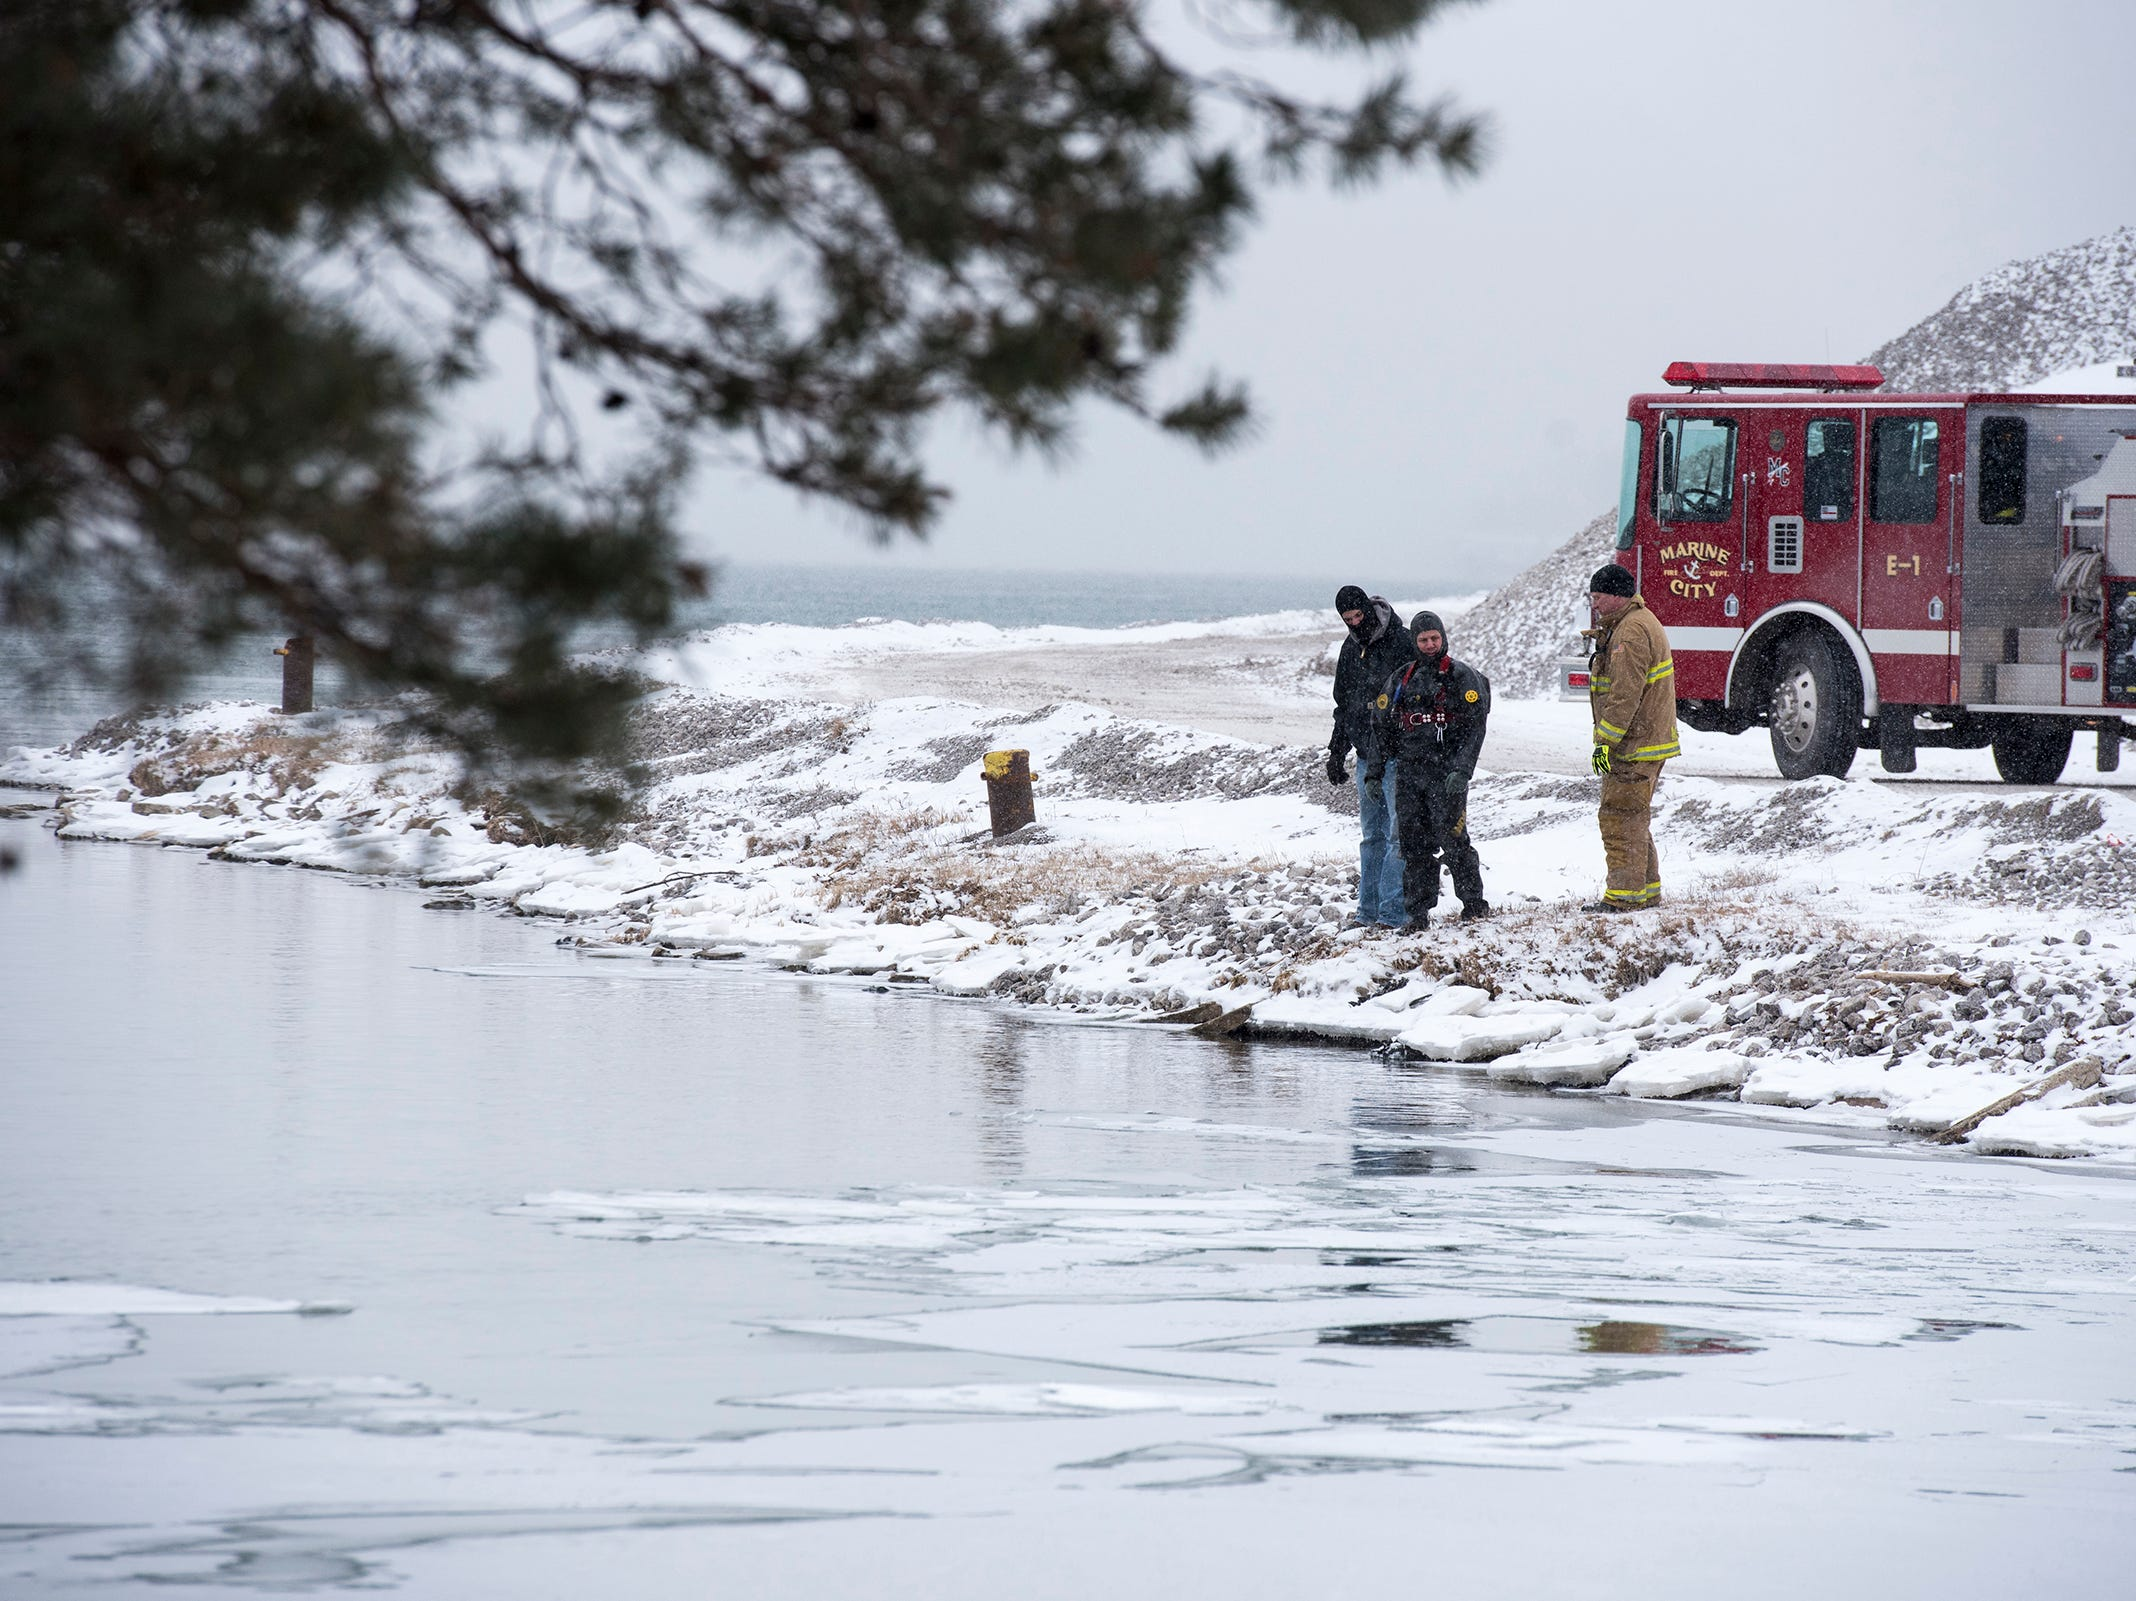 Crews investigate a scene where a vehicle went into the river Monday, March 4, 2019, where the Belle River meets the St. Clair River in Marine City. Police spotted tracks appearing to enter the waterway in the 1300 block of South Water Street shortly before 9:30 a.m. A body was discovered in the water.